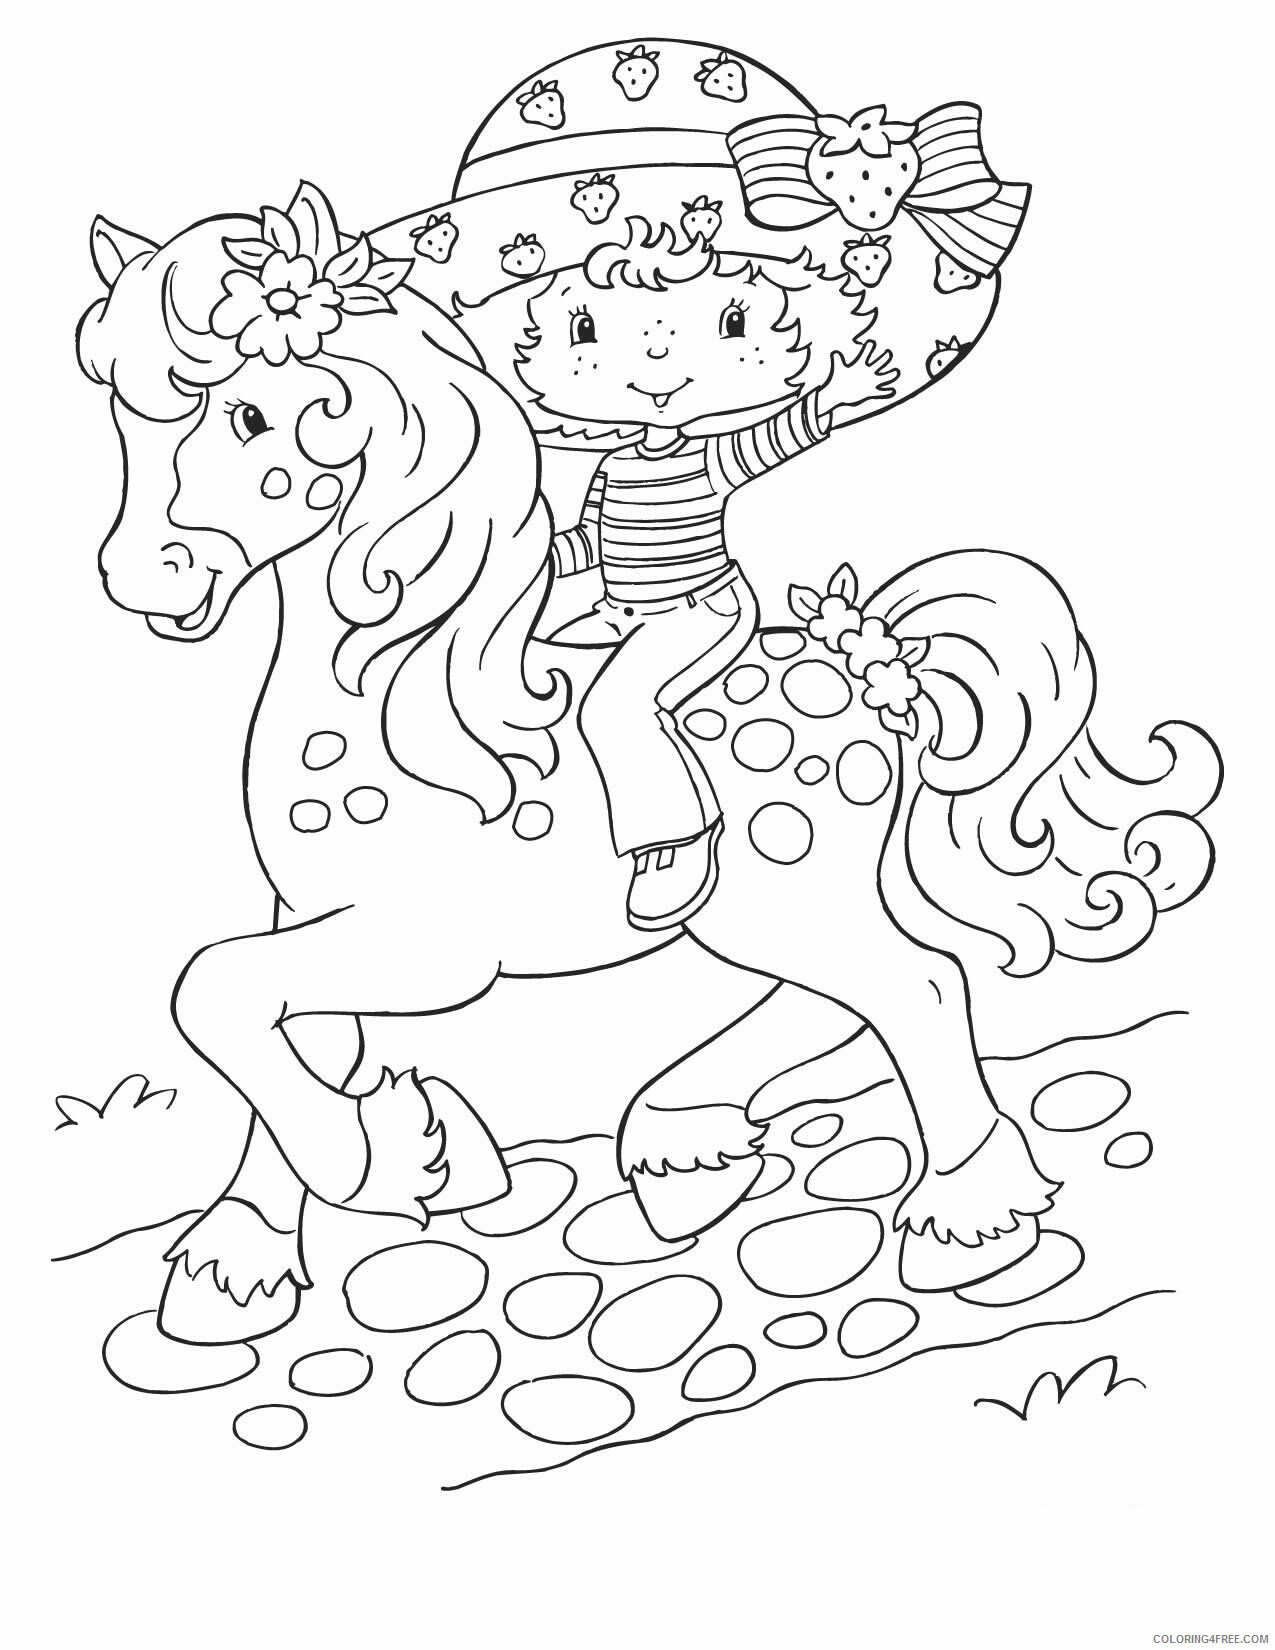 Strawberry Shortcake Coloring Pages TV Film Printable 2020 08104 Coloring4free